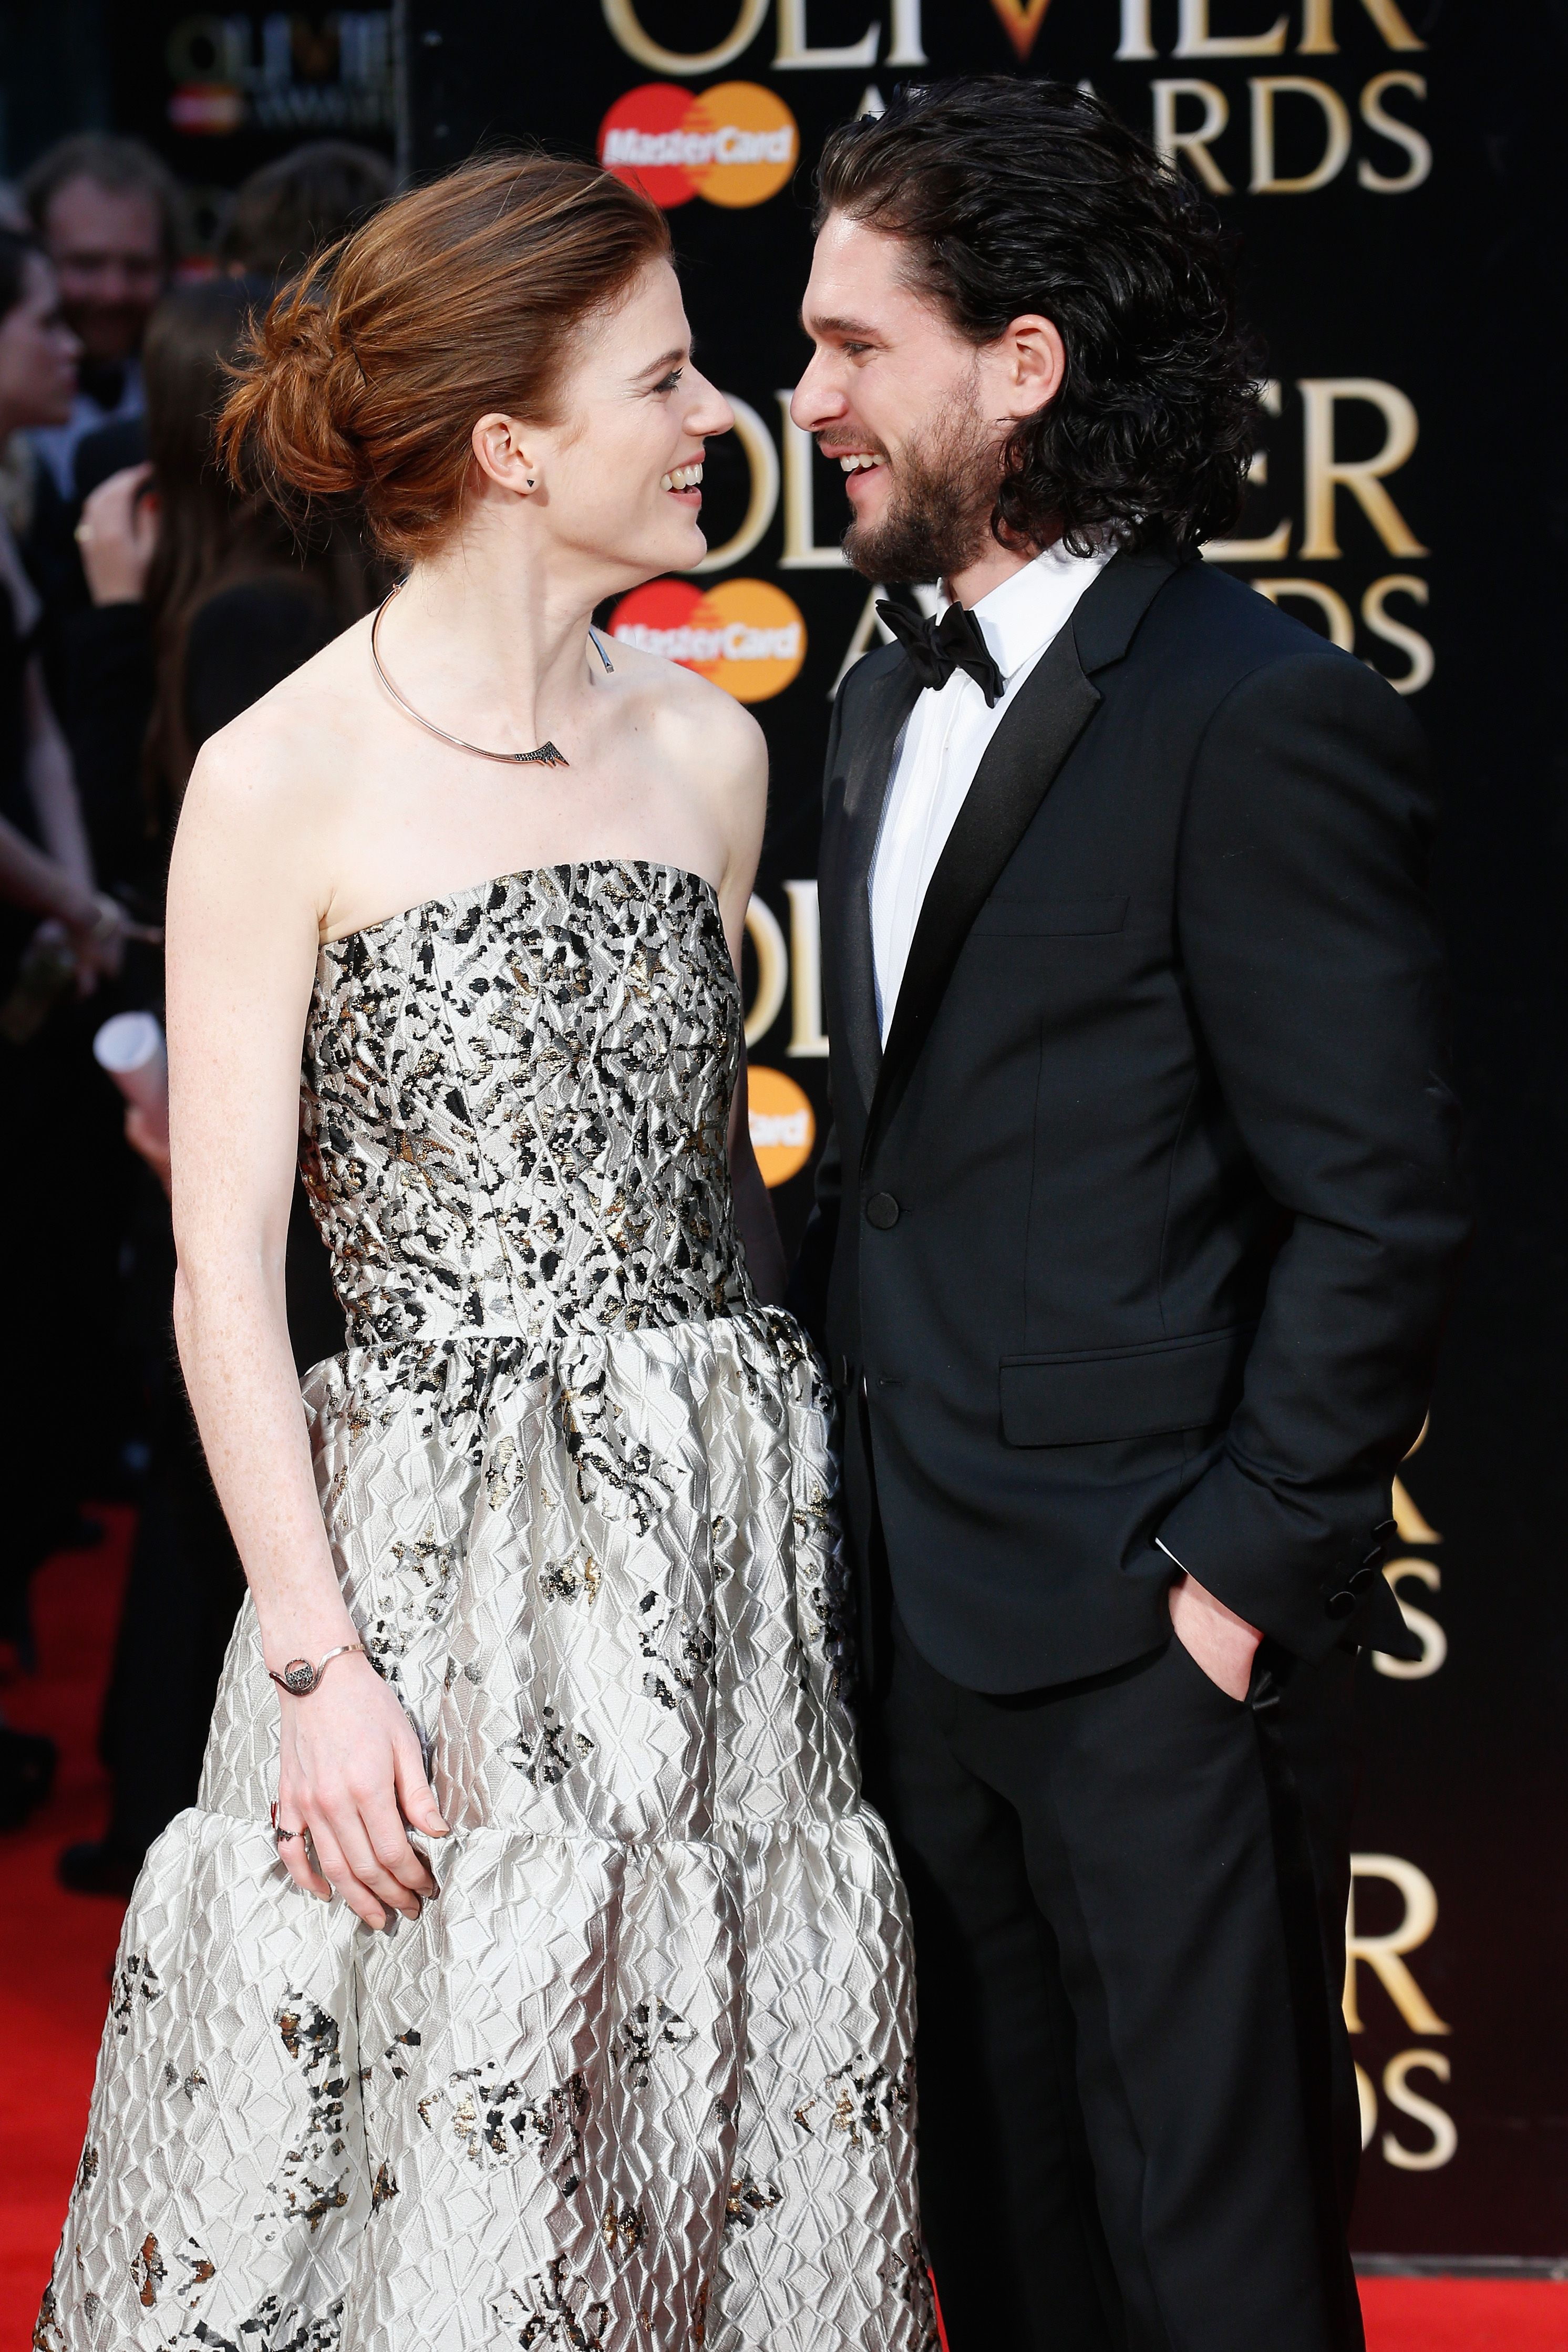 Rose Leslie (Ygritte) and Kit Harington (Jon Snow) The on-screen lovebirds made it official off-screen, tying the knot at a Game of Thrones-esque castle in 2018. Talk about life imitating art.